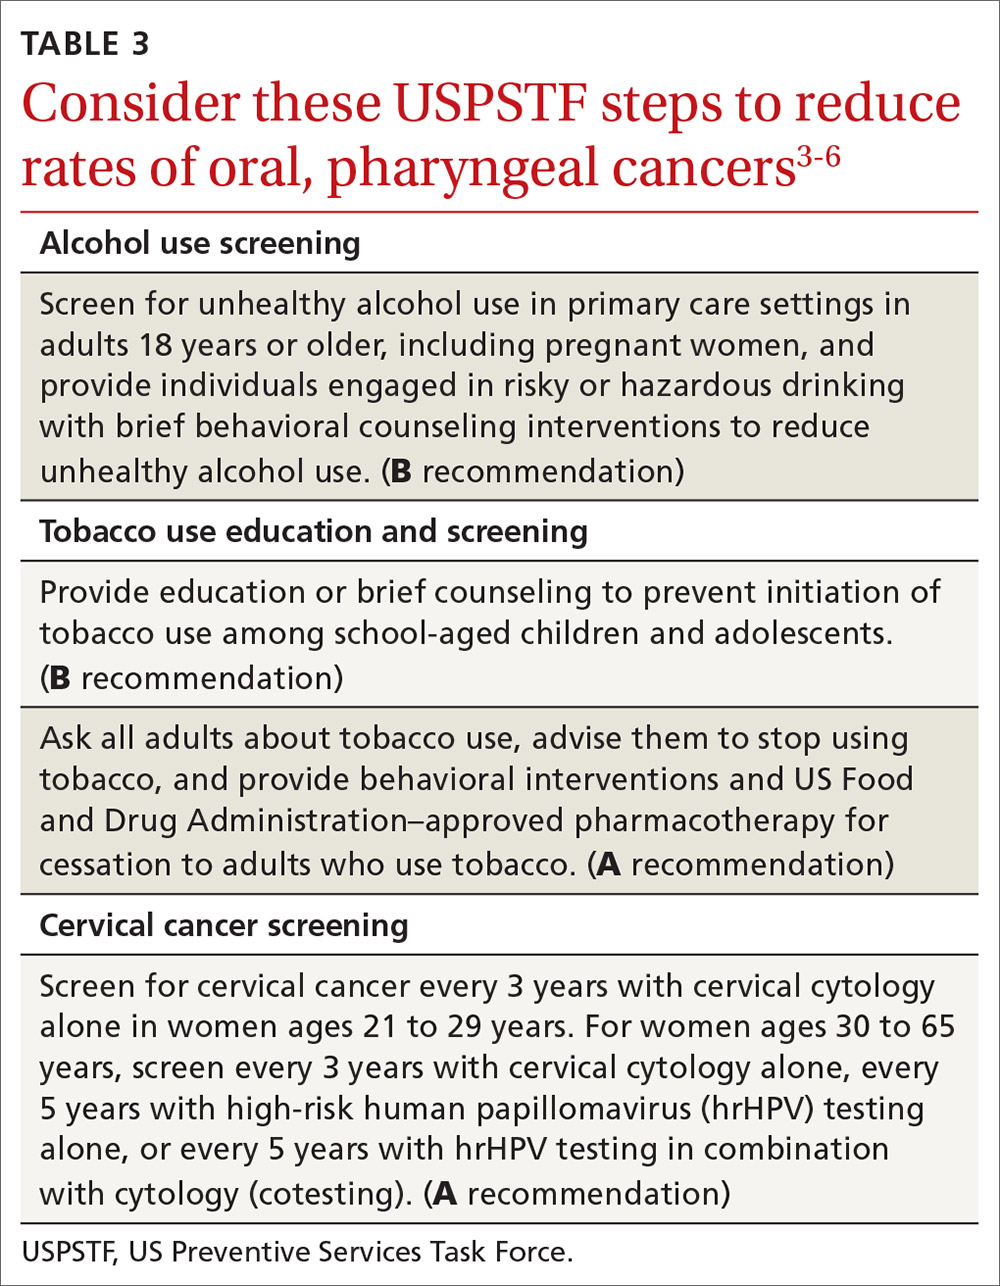 Consider these USPSTF steps to reduce rates of oral, pharyngeal cancers